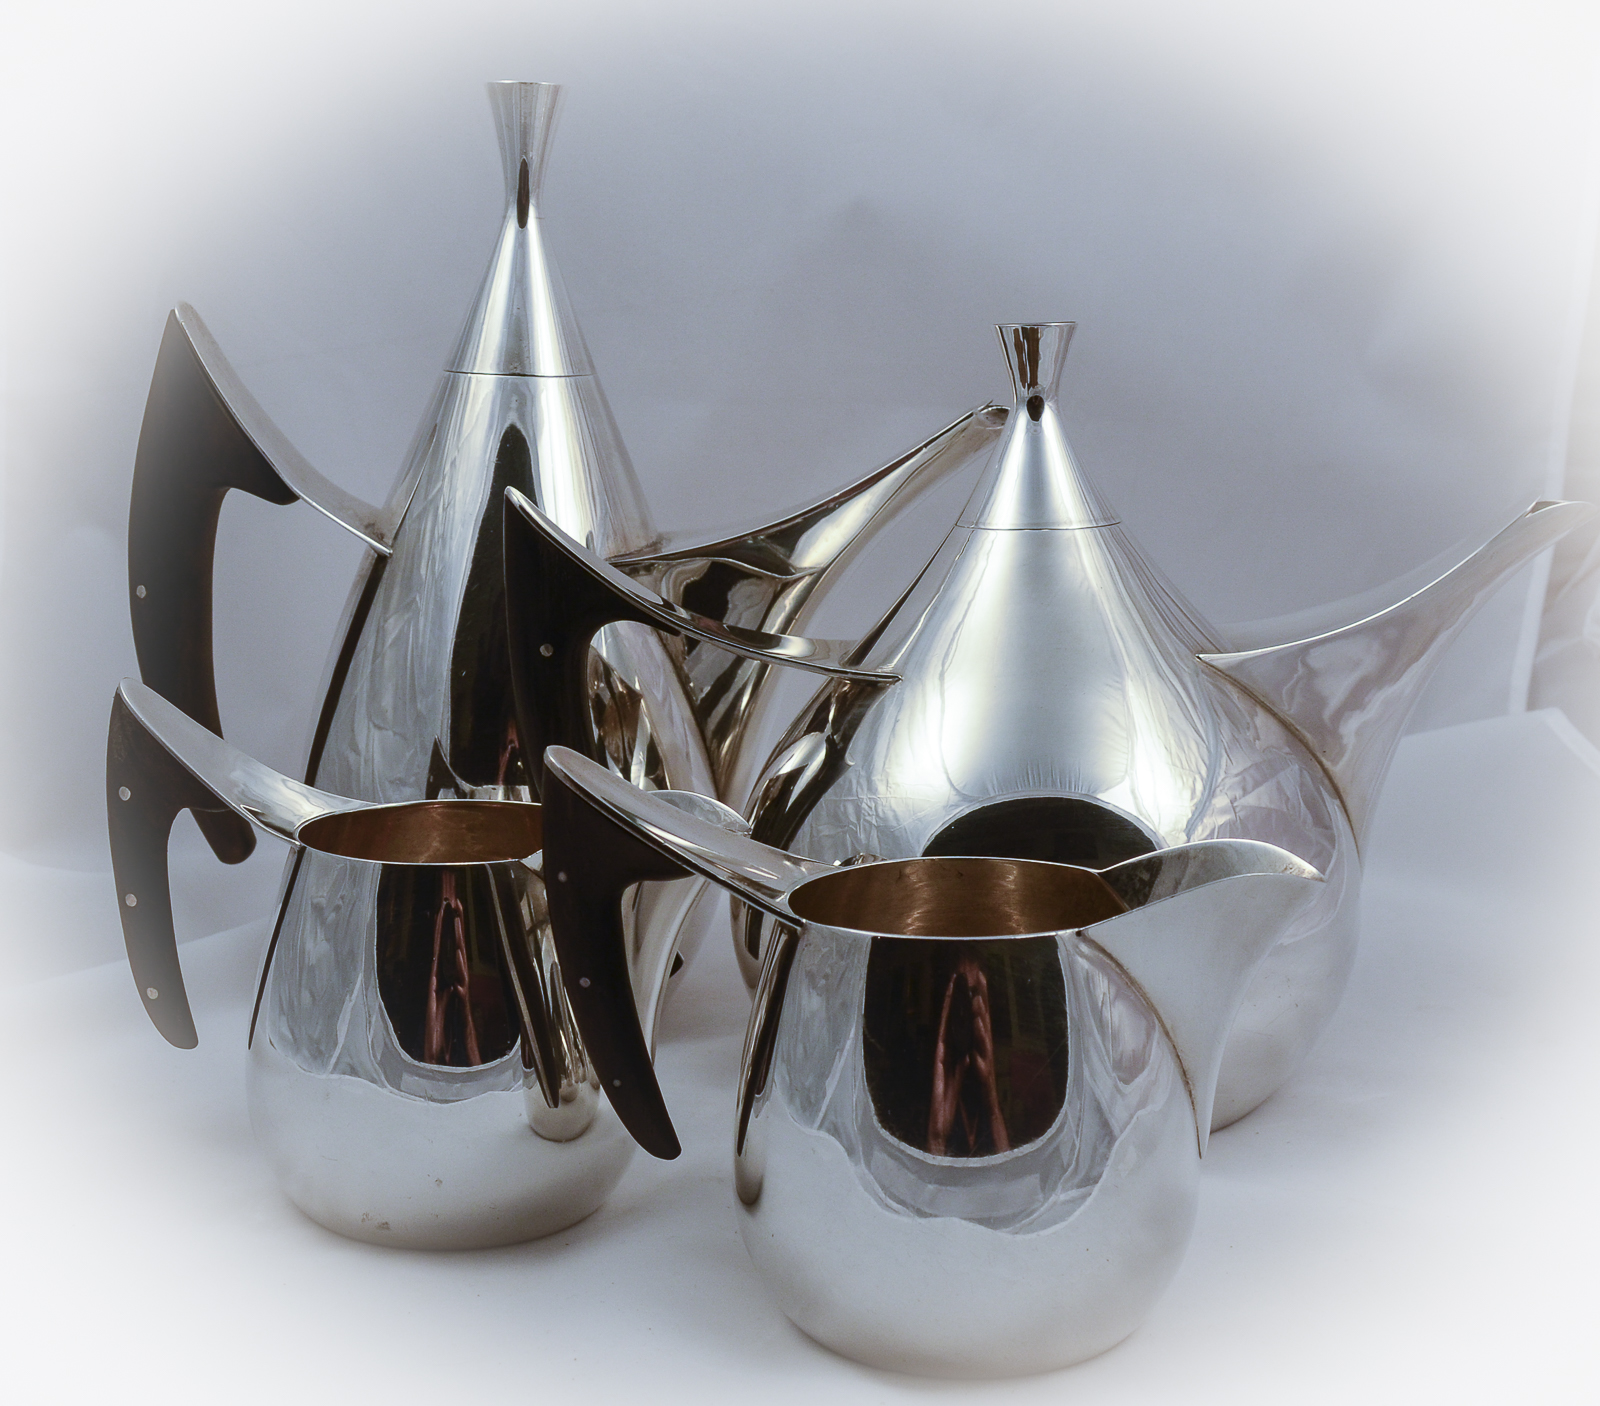 allan adler teardrop tea set